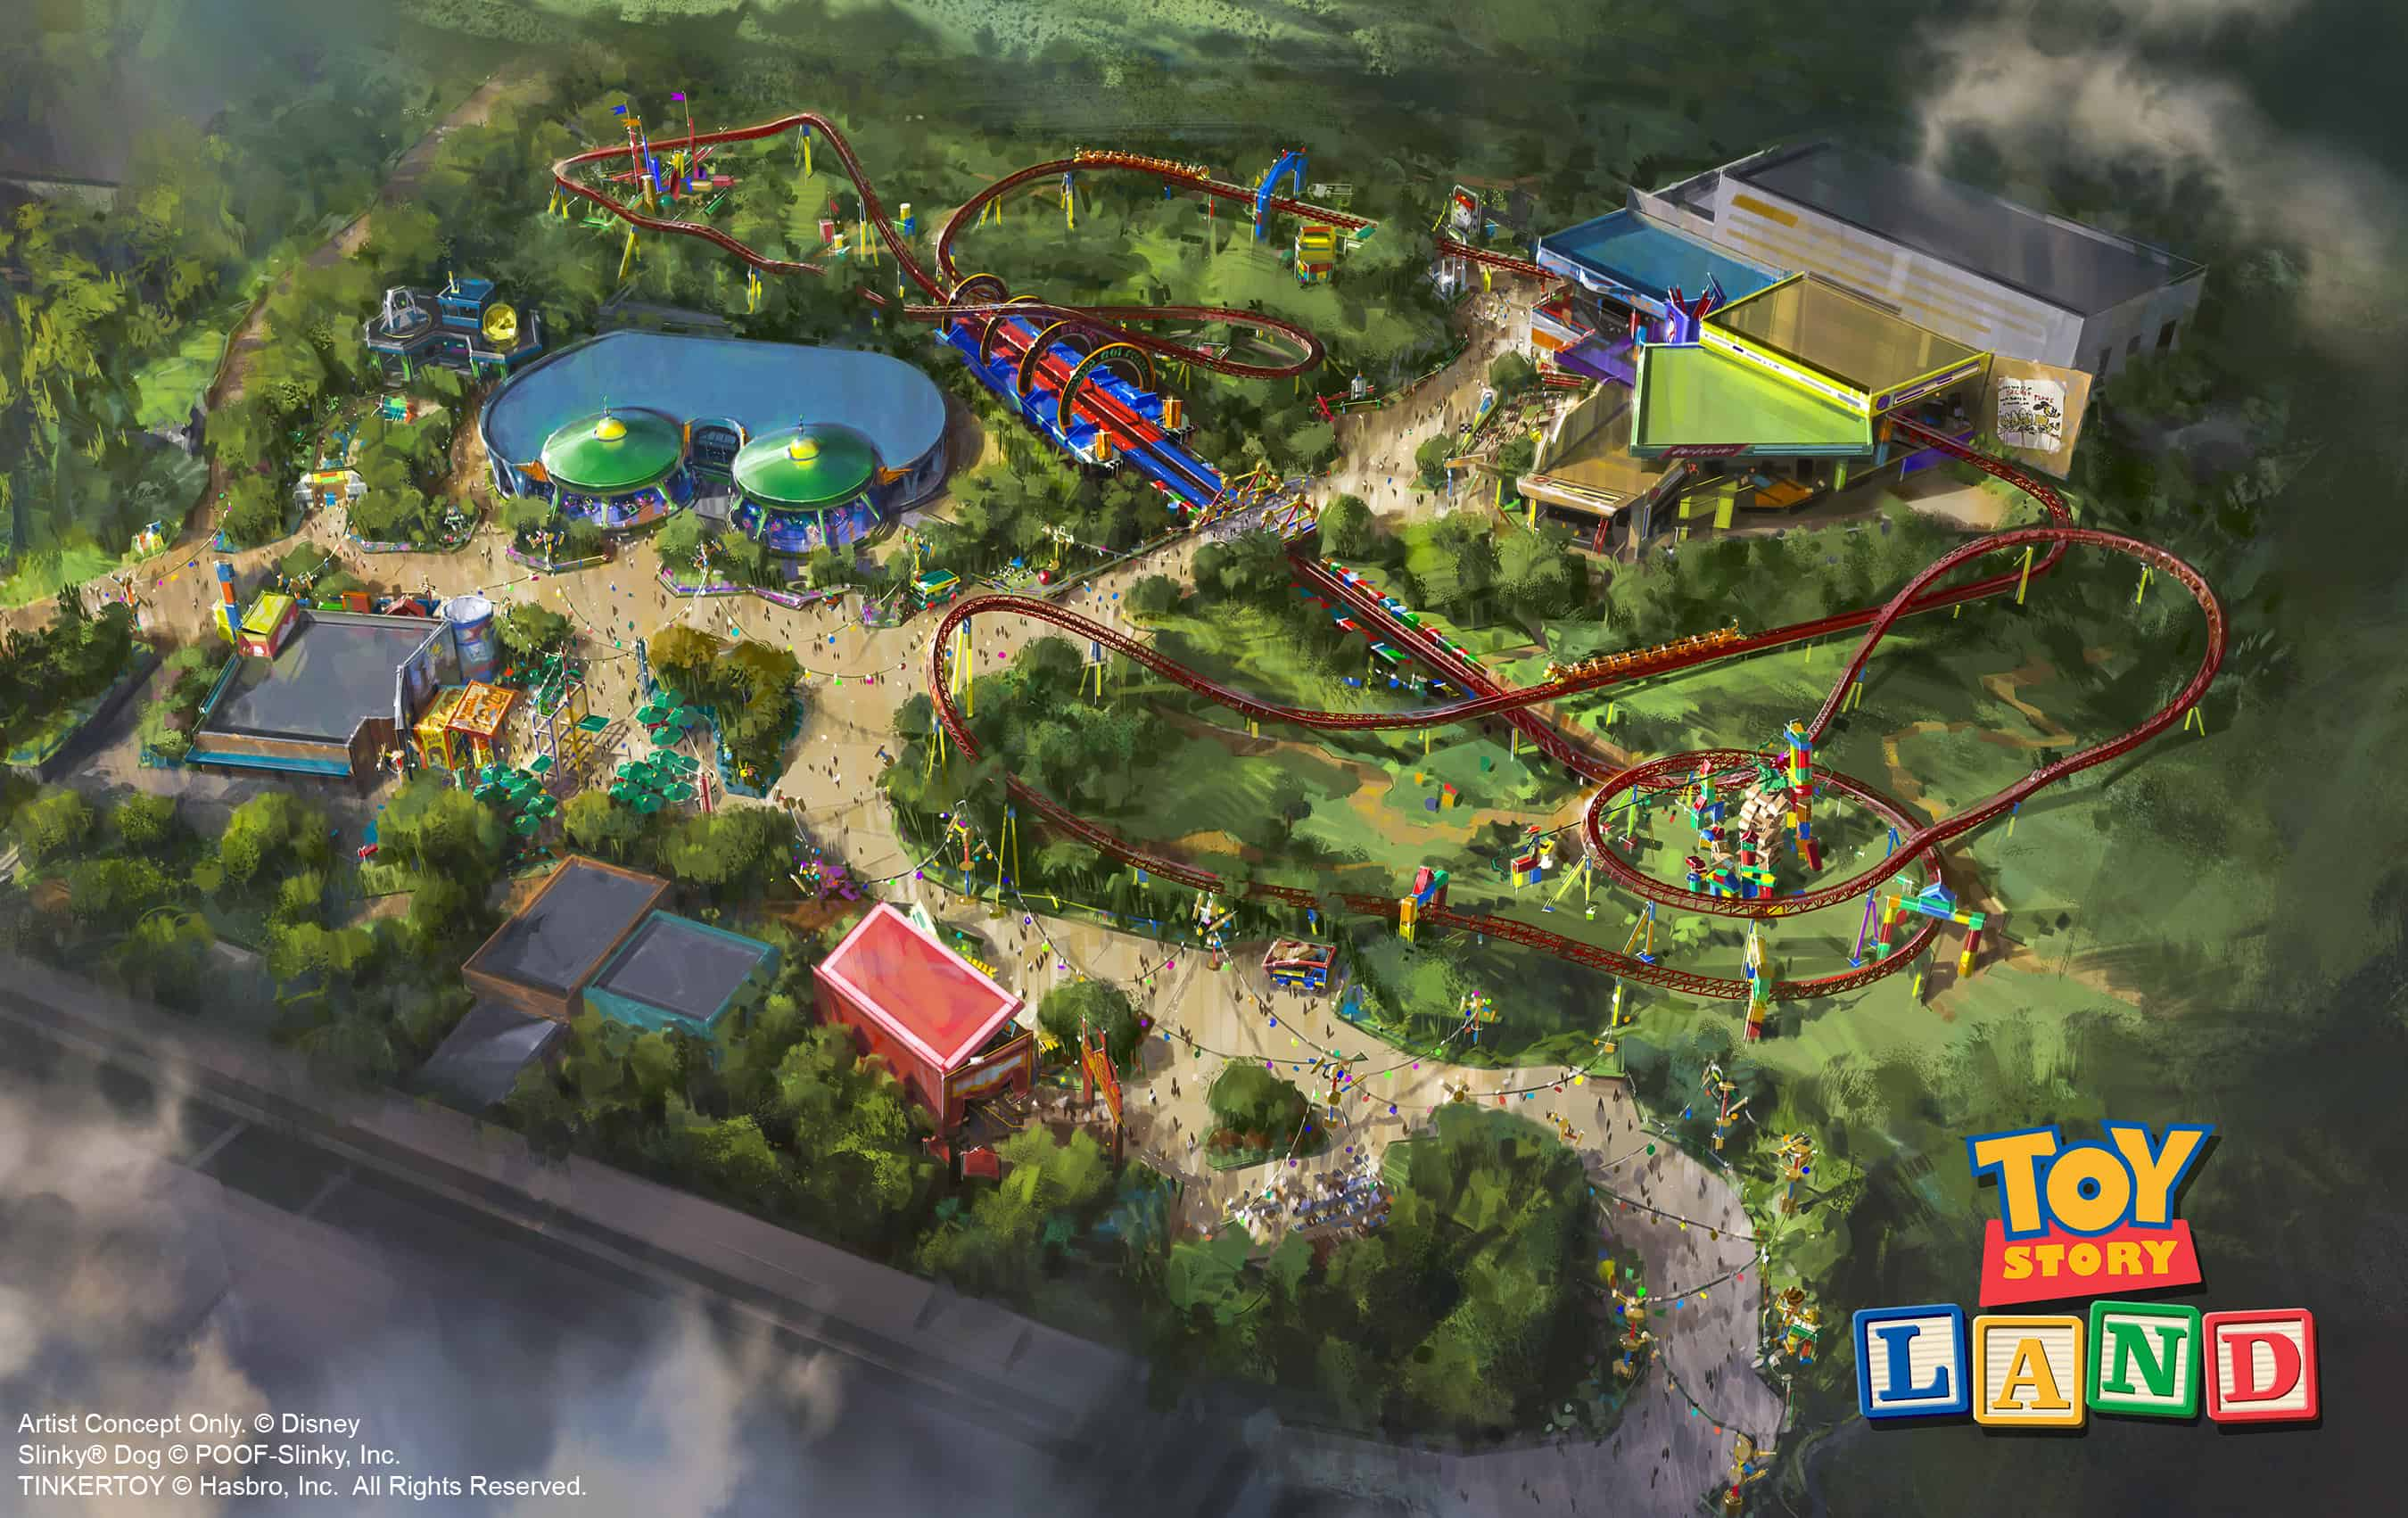 The reimagining of Disney's Hollywood Studios will take guests to infinity and beyond, allowing them to step into the worlds of their favorite films, starting with Toy Story Land. This new 11-acre land will transport guests into the adventurous outdoors of Andy's backyard. Guests will think they've been shrunk to the size of Woody and Buzz as they are surrounded by oversized toys that Andy has assembled using his vivid imagination. Using toys like building blocks, plastic buckets and shovels, and game board pieces, Andy has designed the perfect setting for this land, which will include two new attractions for any Disney park and one expanded favorite. (Disney Parks)